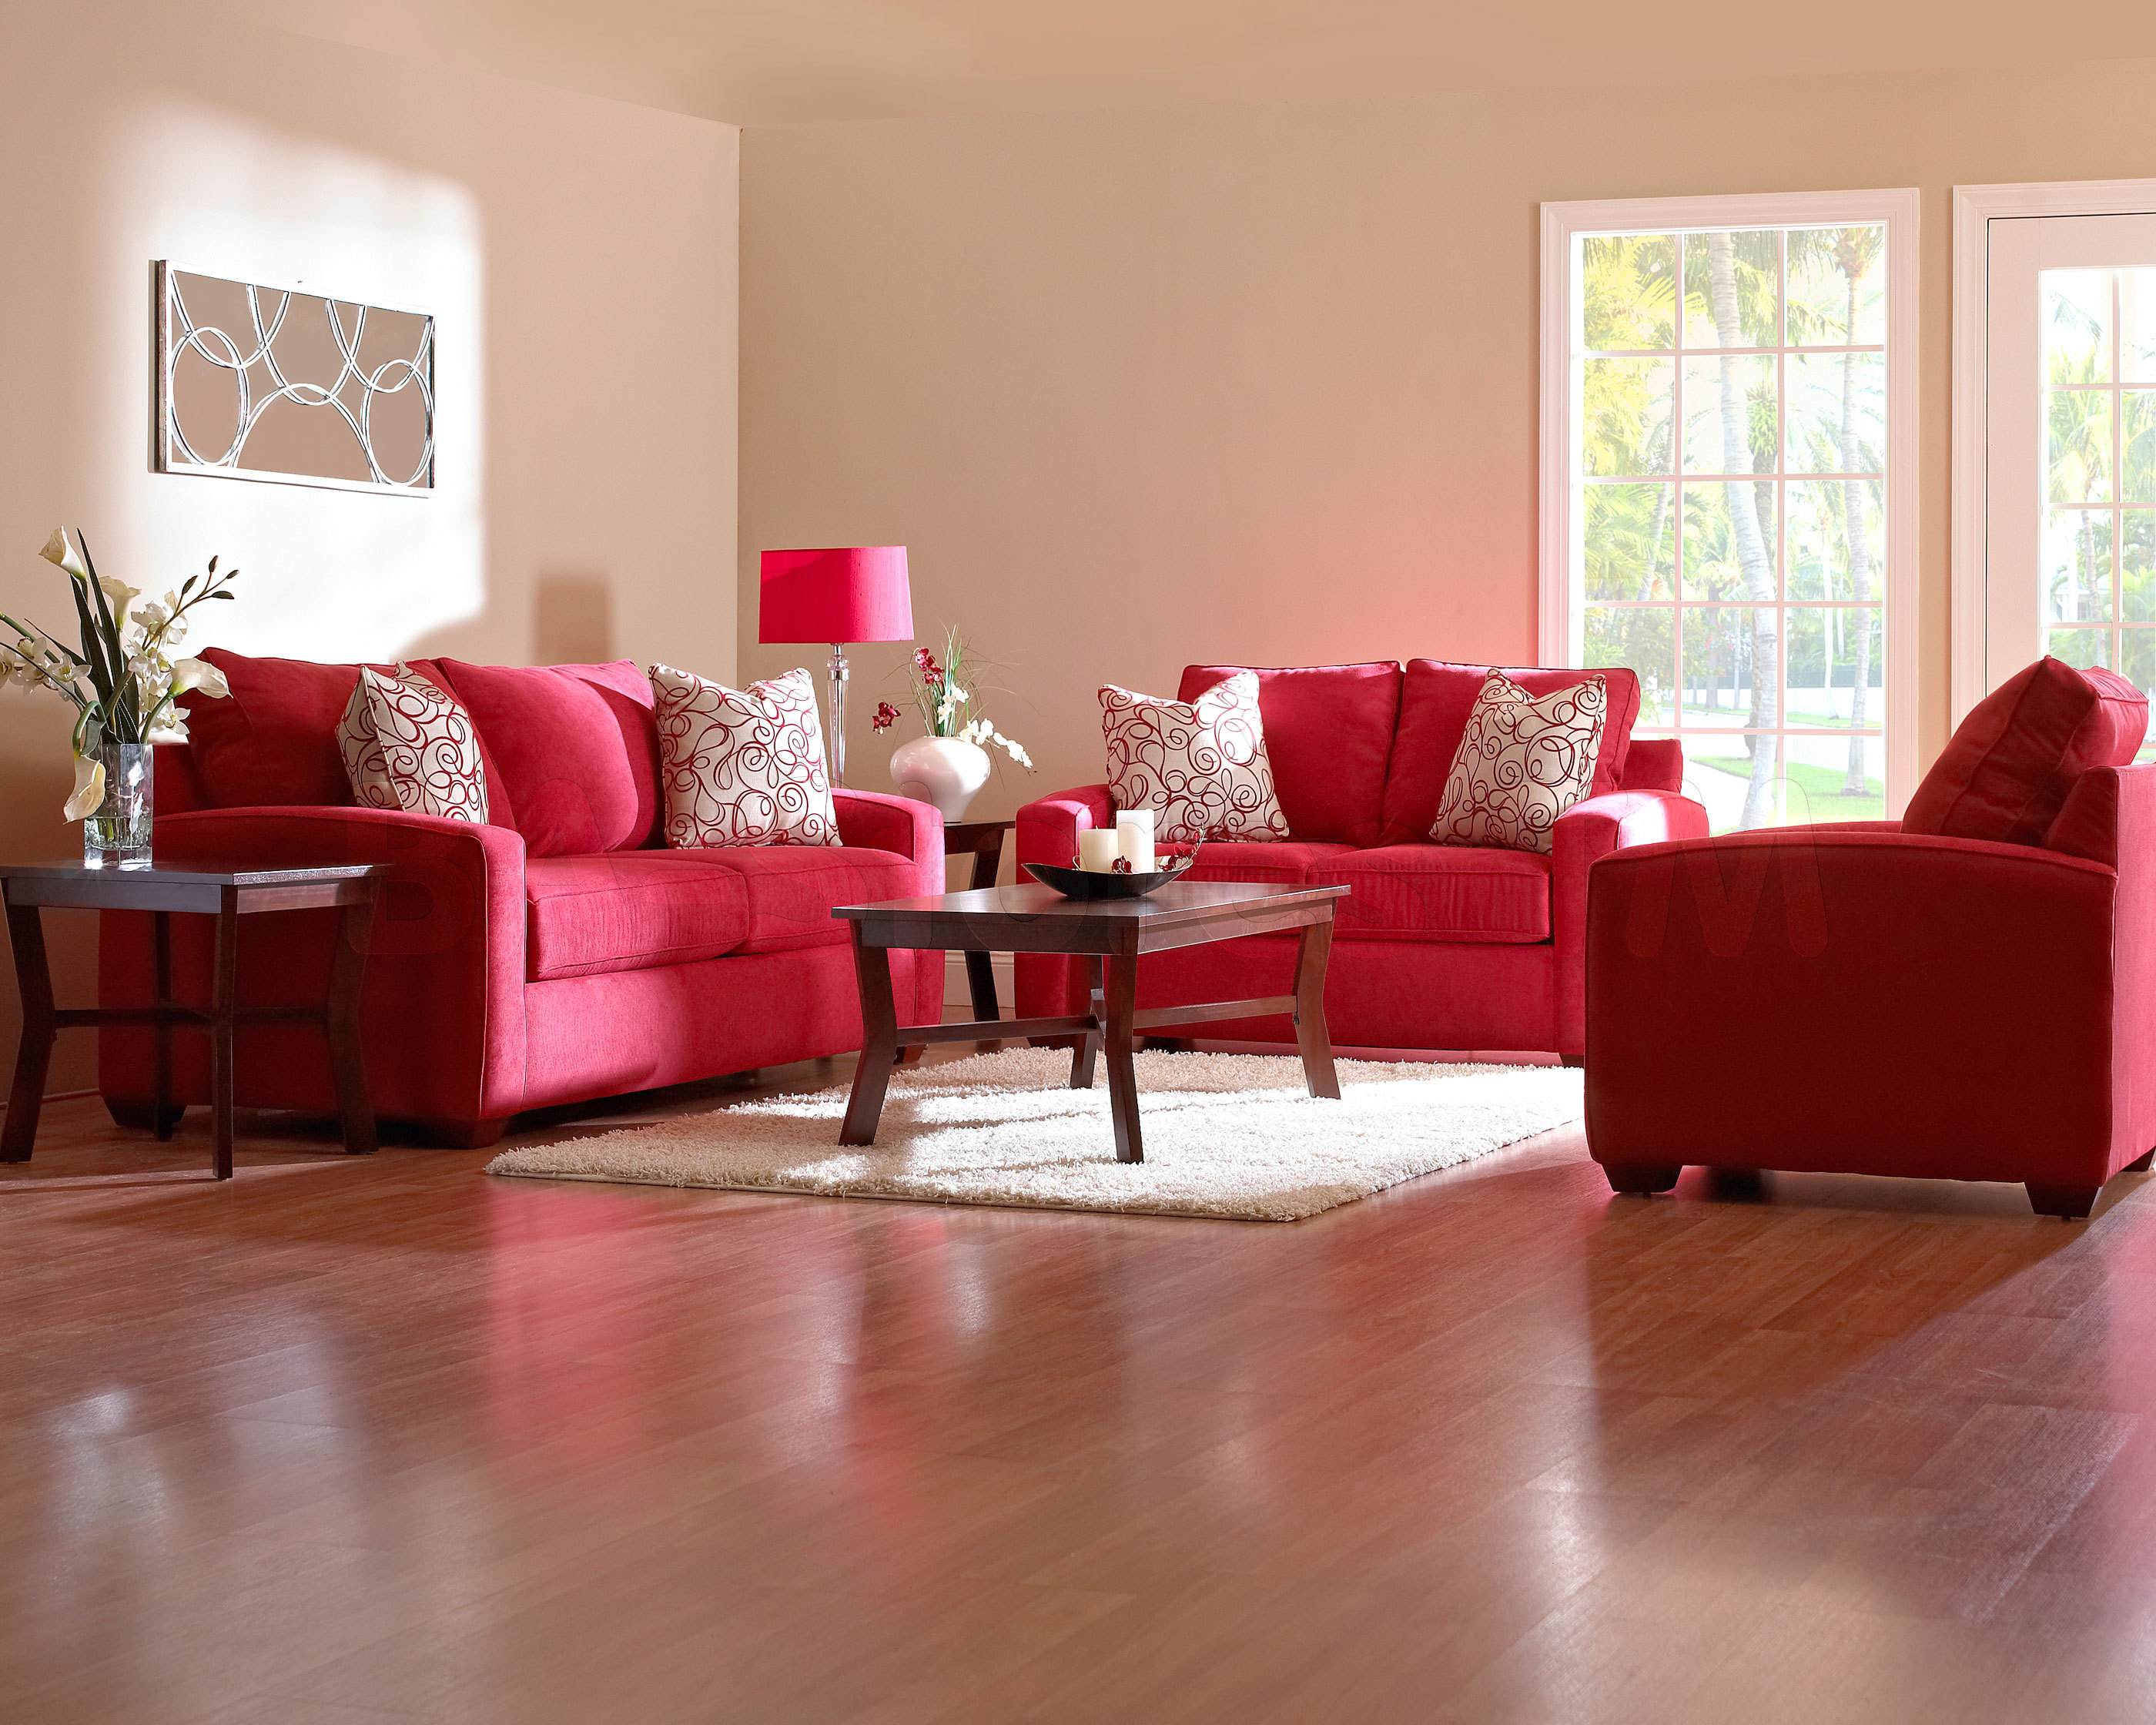 Modern Living Room Ideas With Red Sofa living room design red sofa | hawk haven